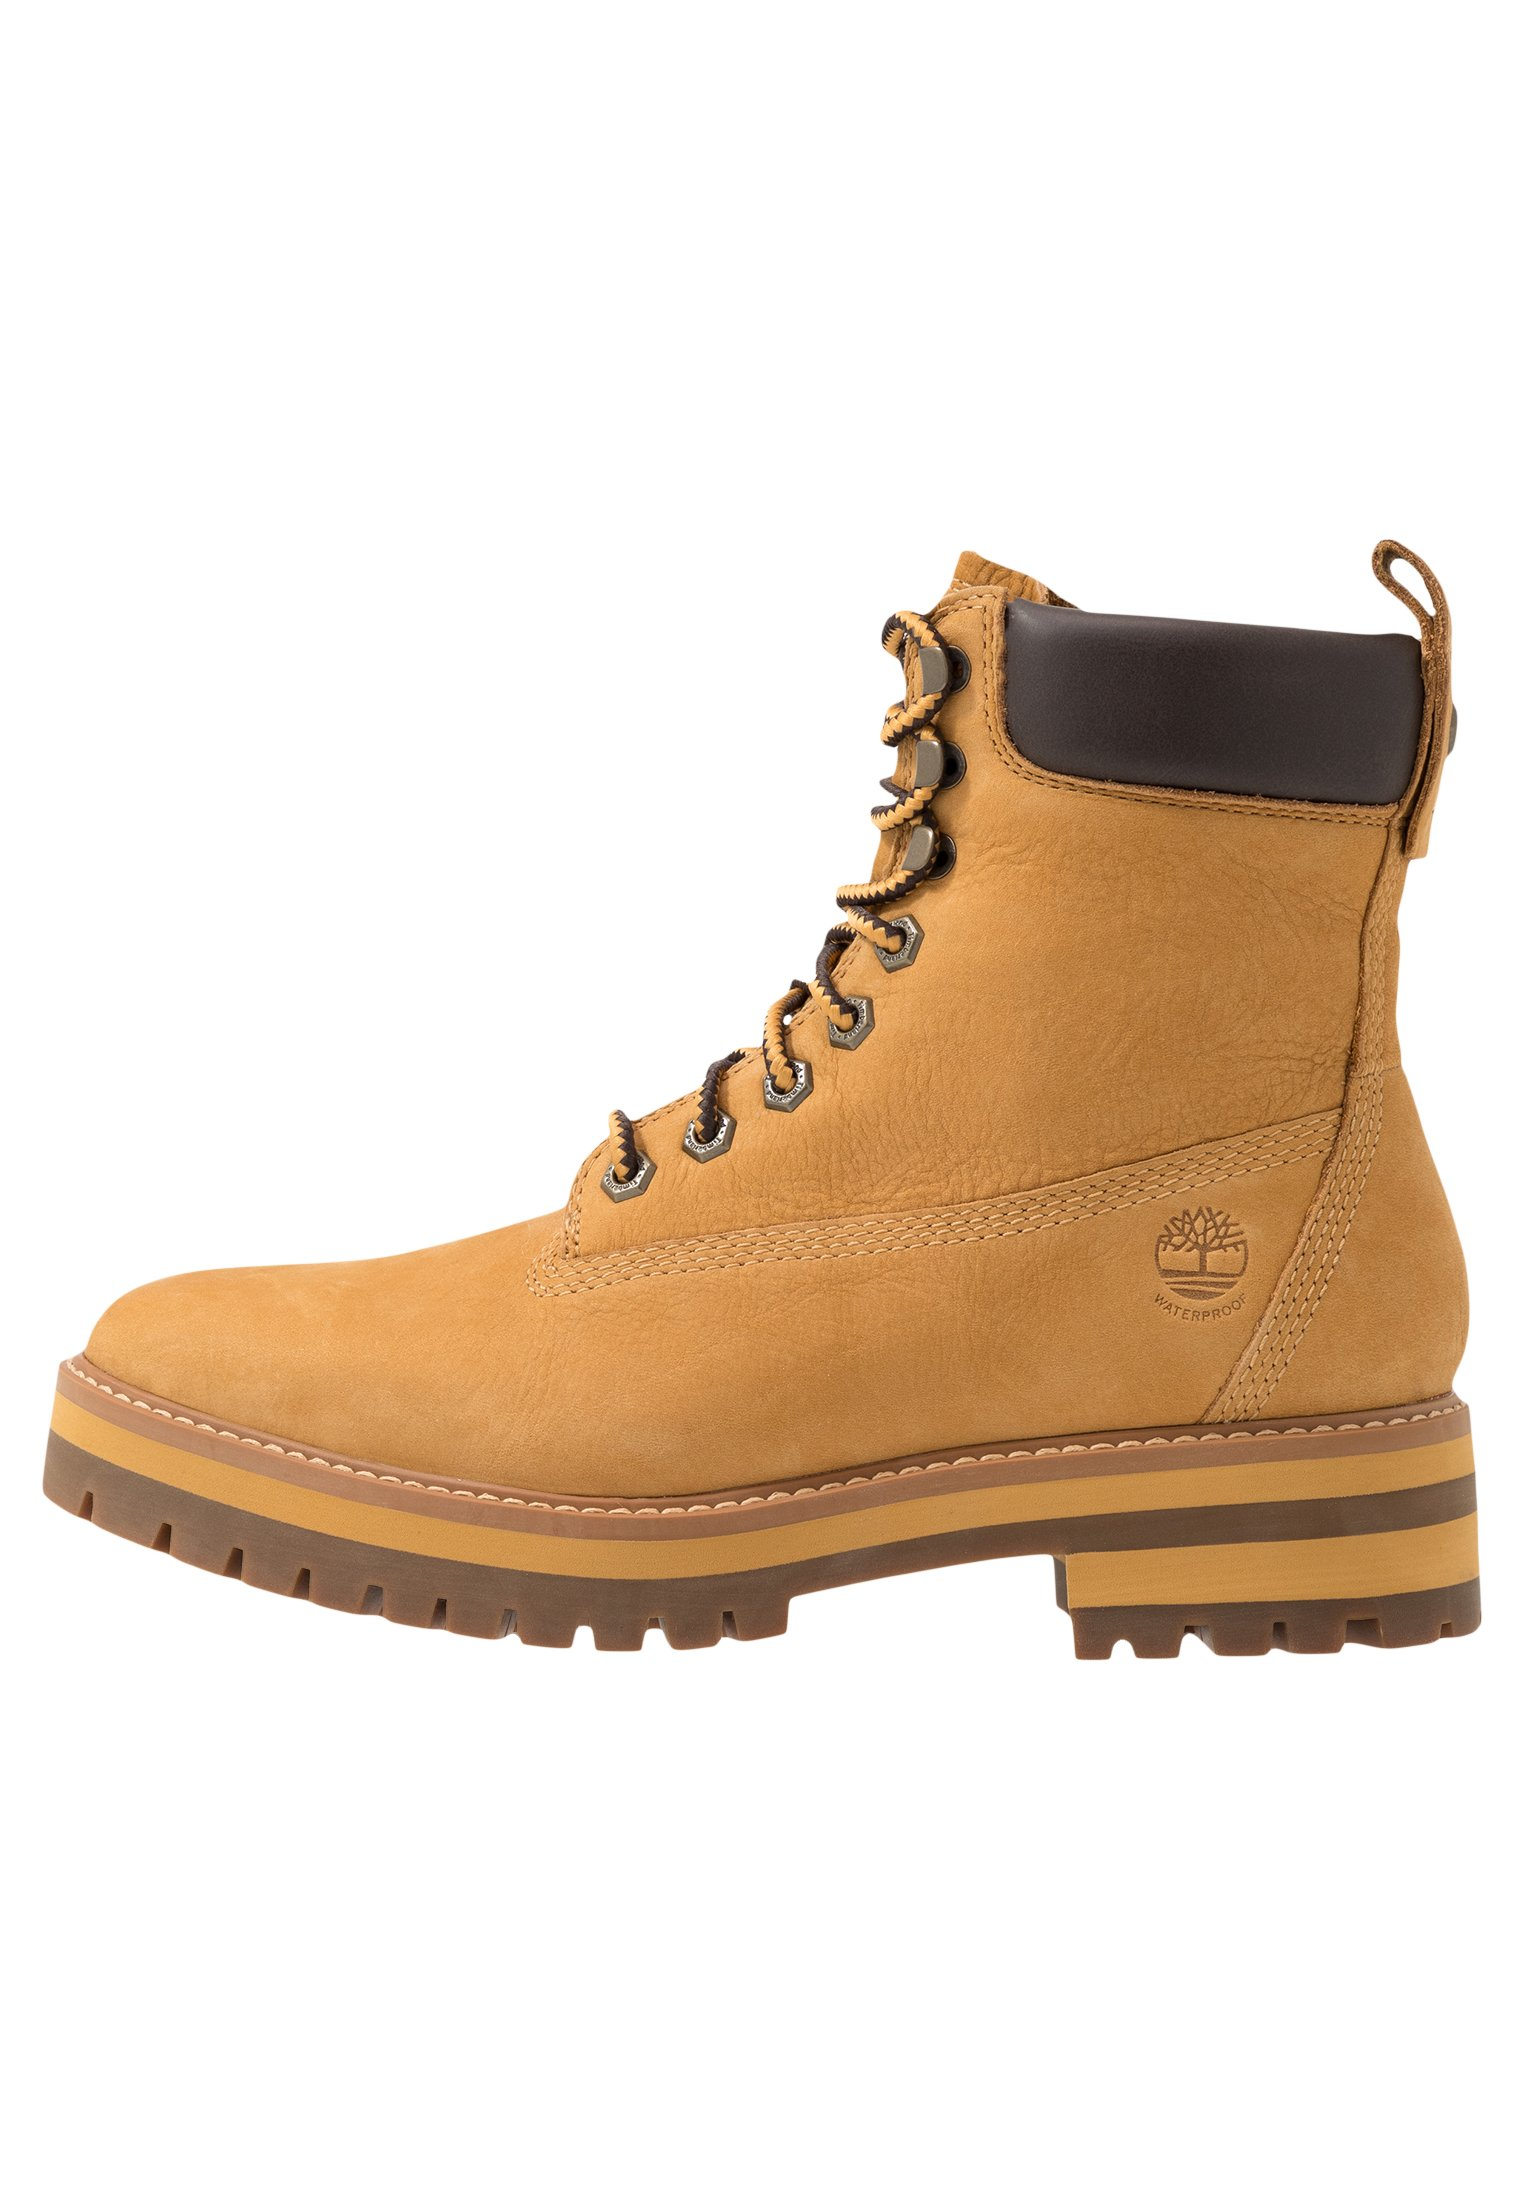 soulier timberland homme